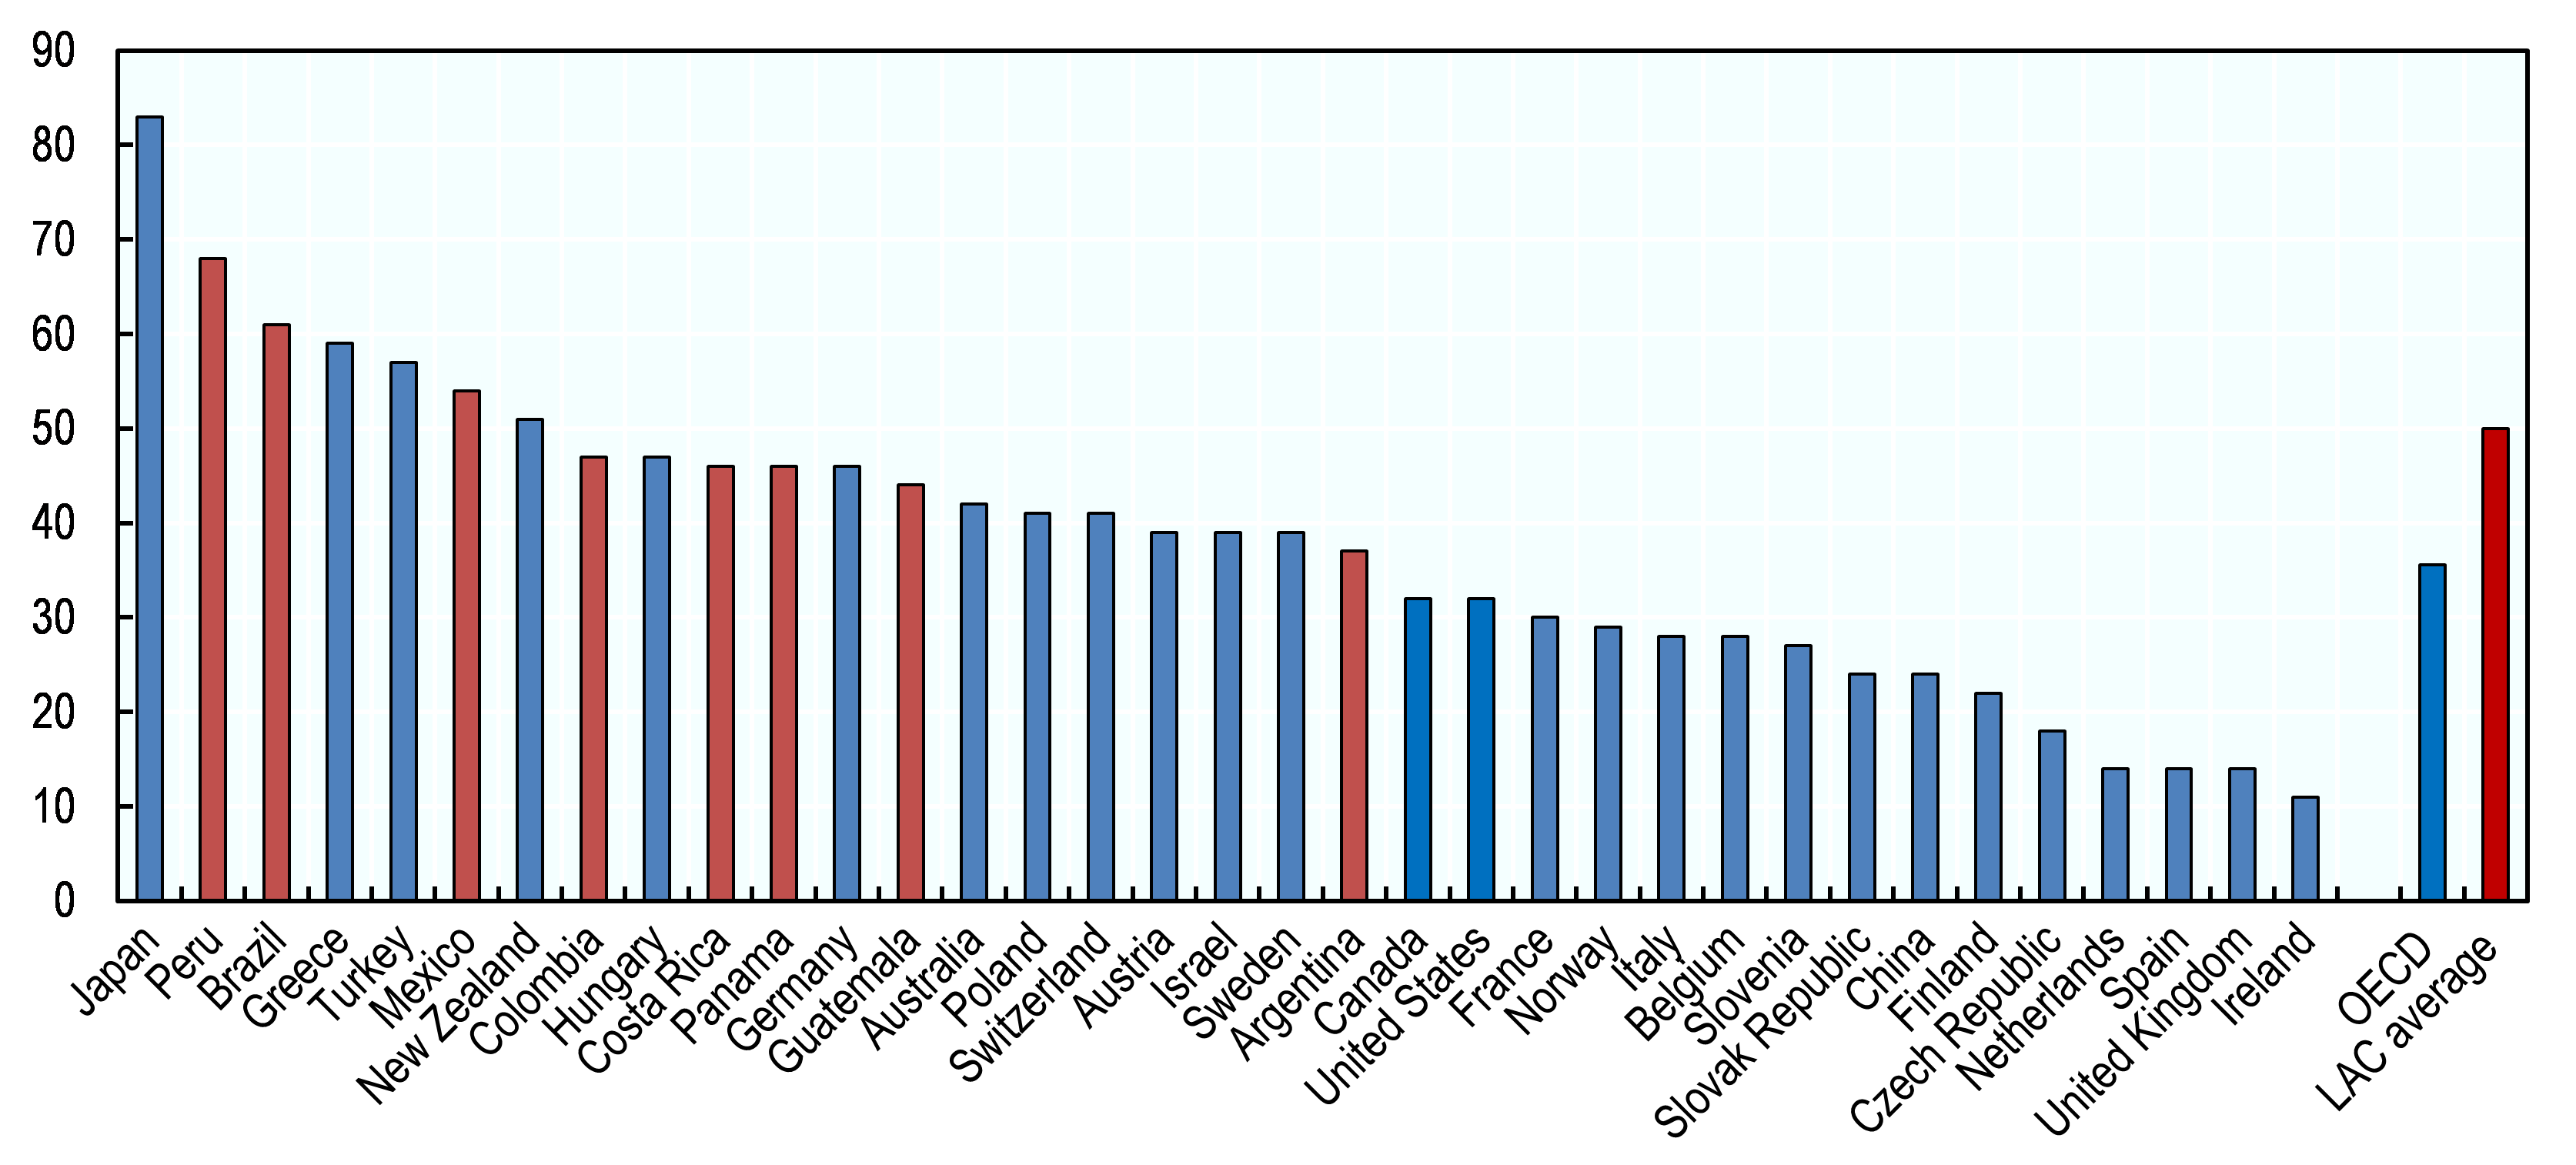 Skills Shortage In Latin America And OECD Countries (Percentage Of Formal  Firms Experiencing Difficulty Filling Jobs, 2015)